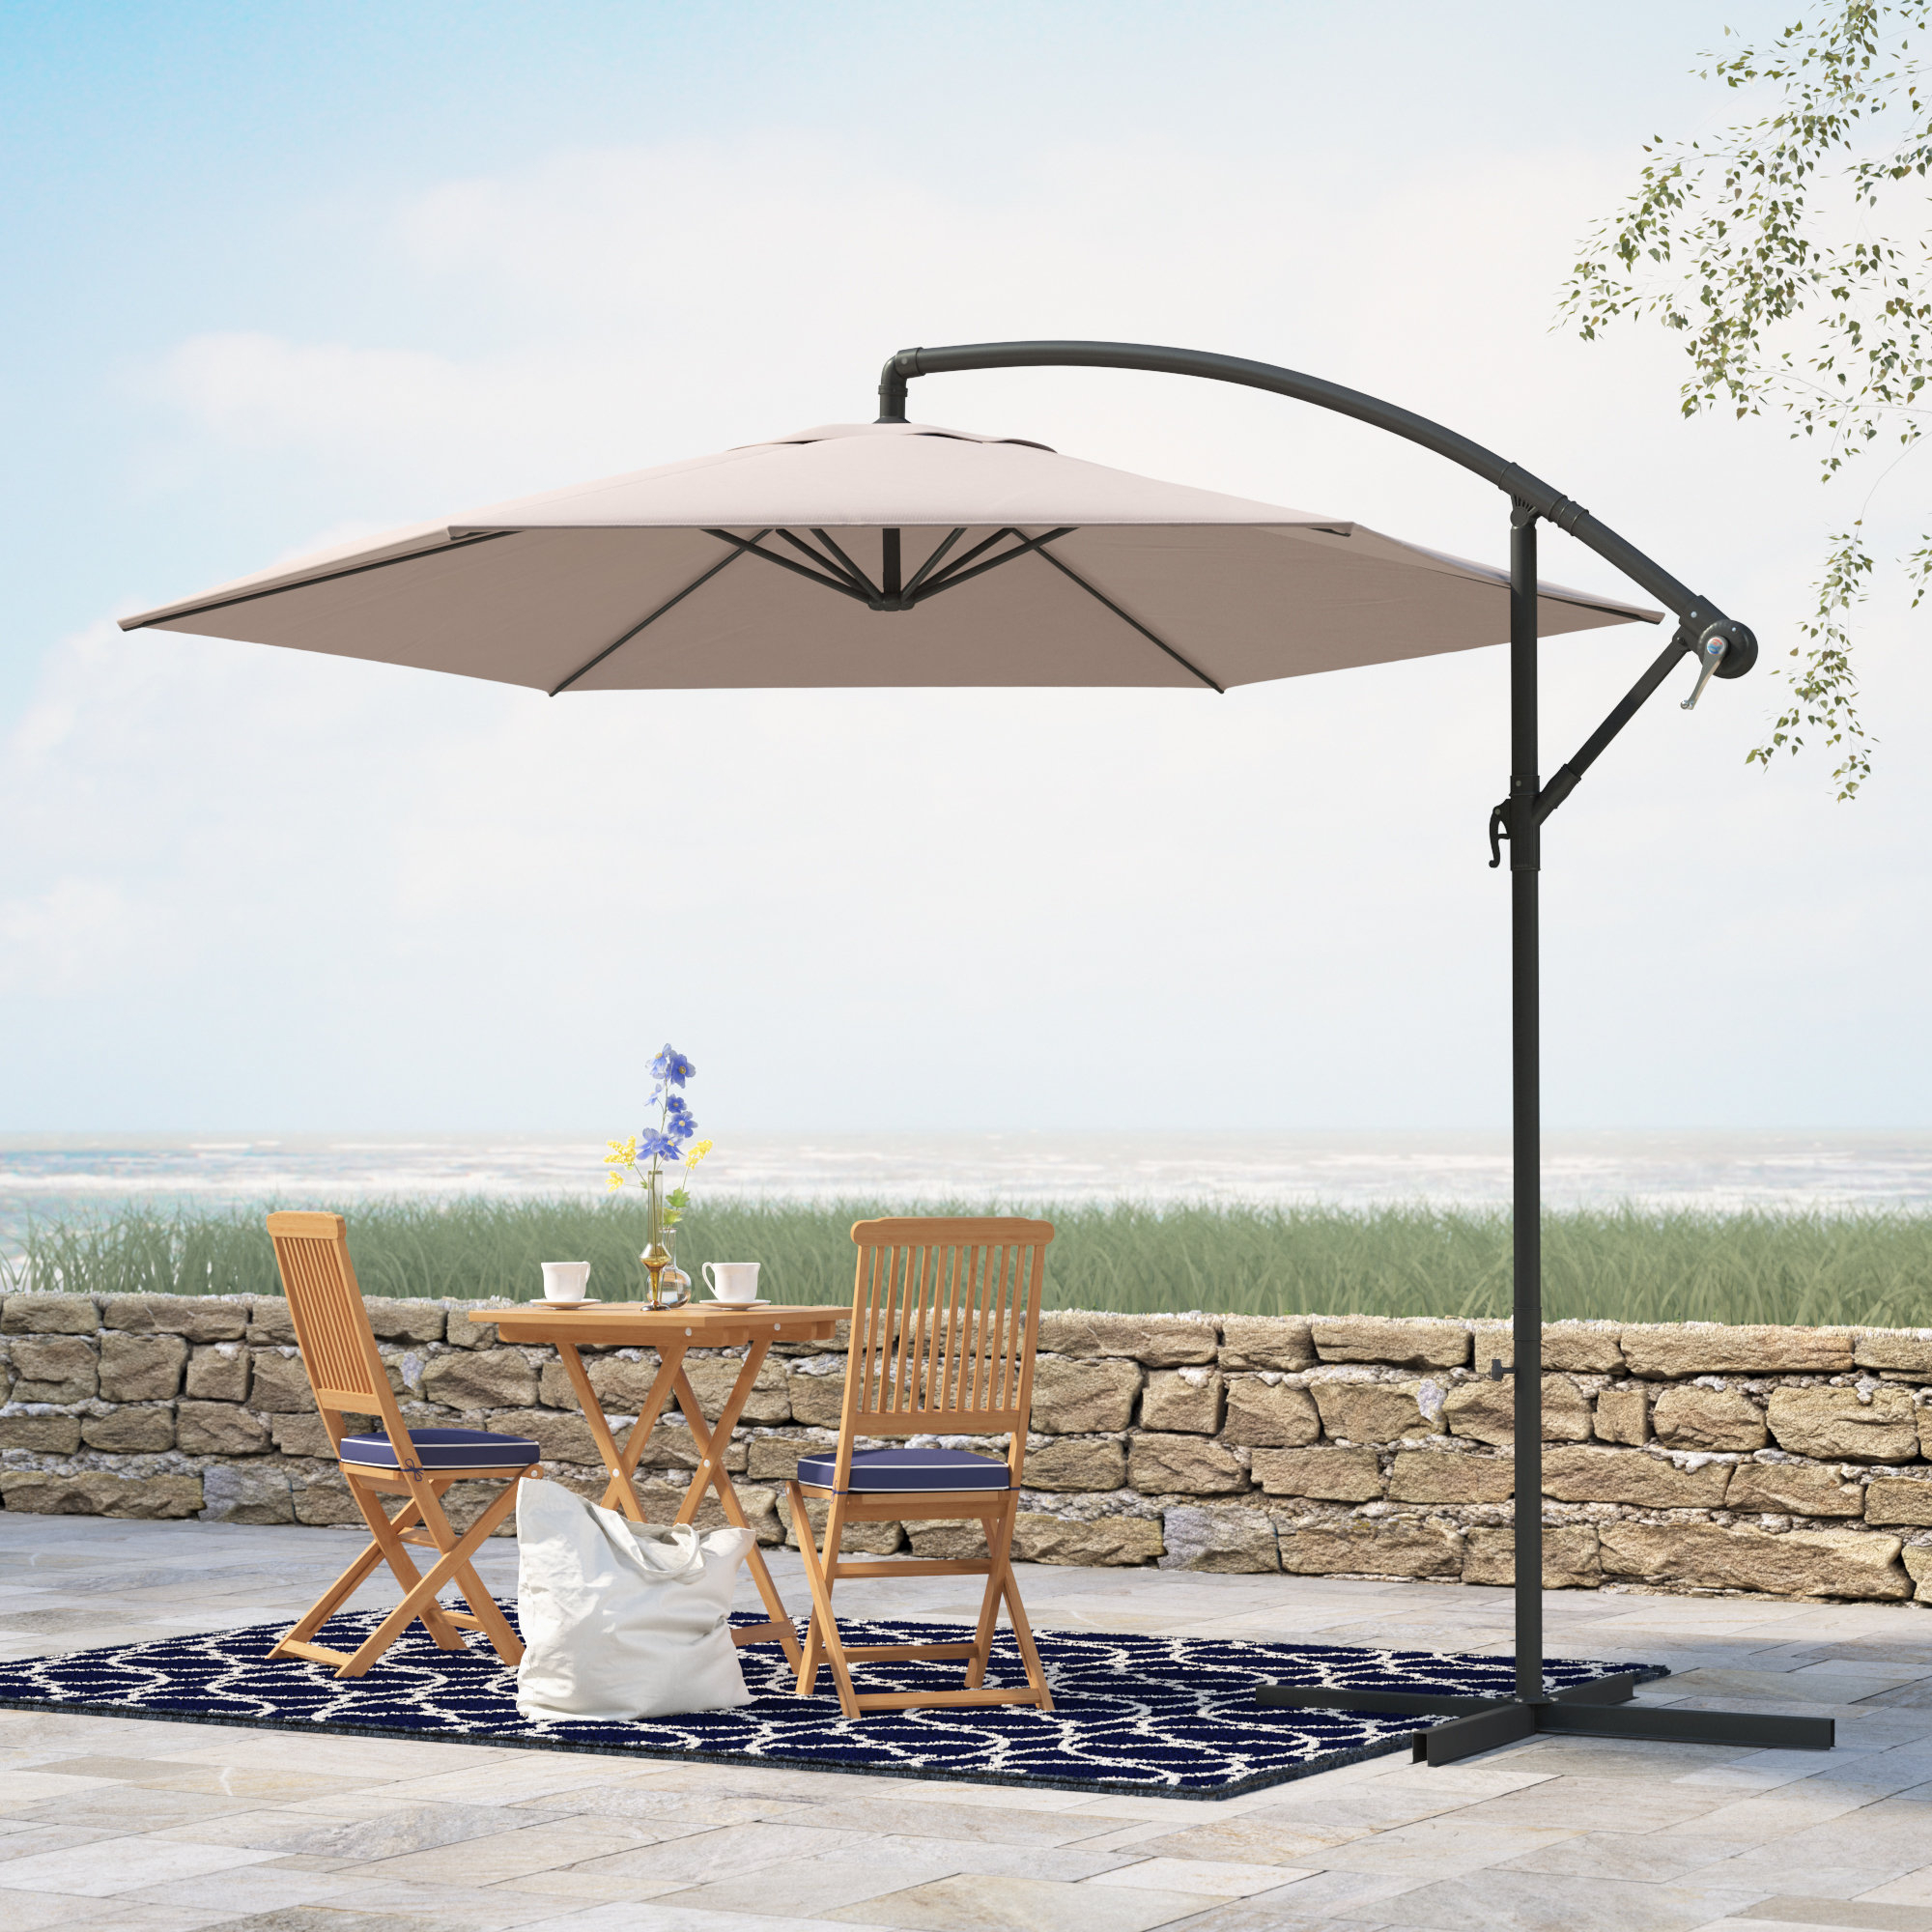 Kizzie Market Cantilever Umbrellas Intended For Most Up To Date Alyssa 10' Cantilever Umbrella (View 8 of 20)